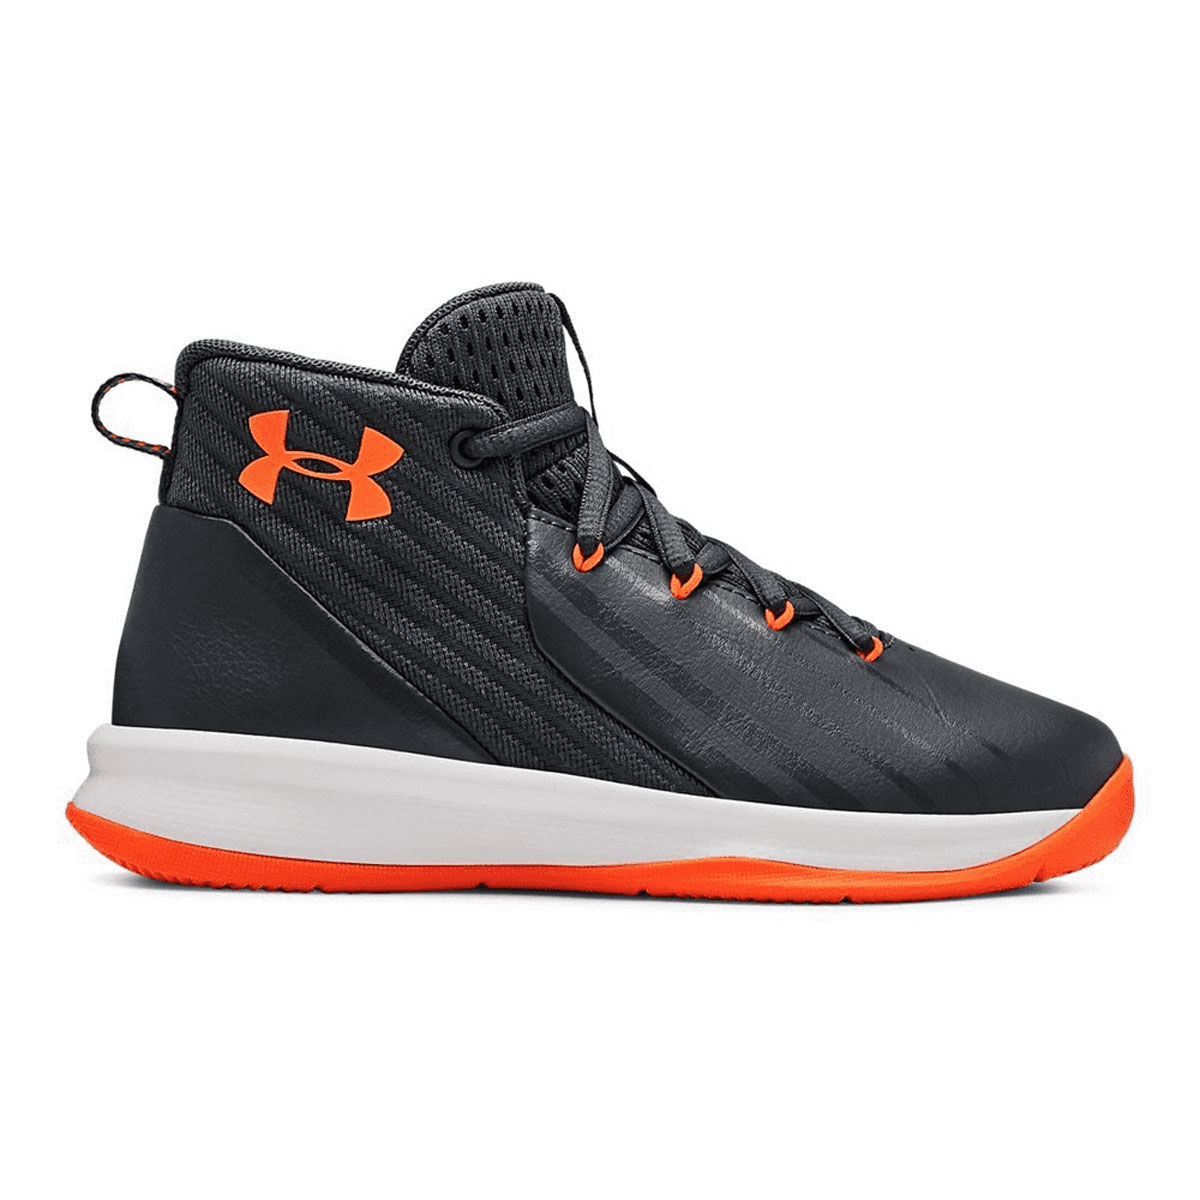 Under Armour Lockdown Little Kids Basketball Shoe